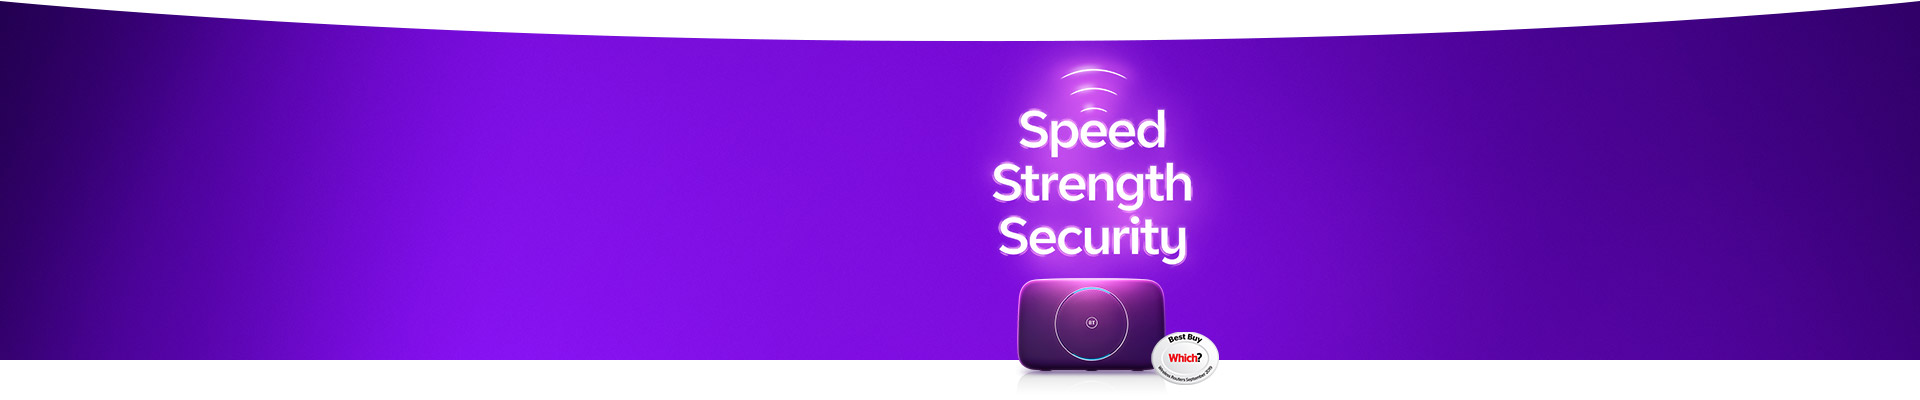 Get speed, strength and security with our broadband deals